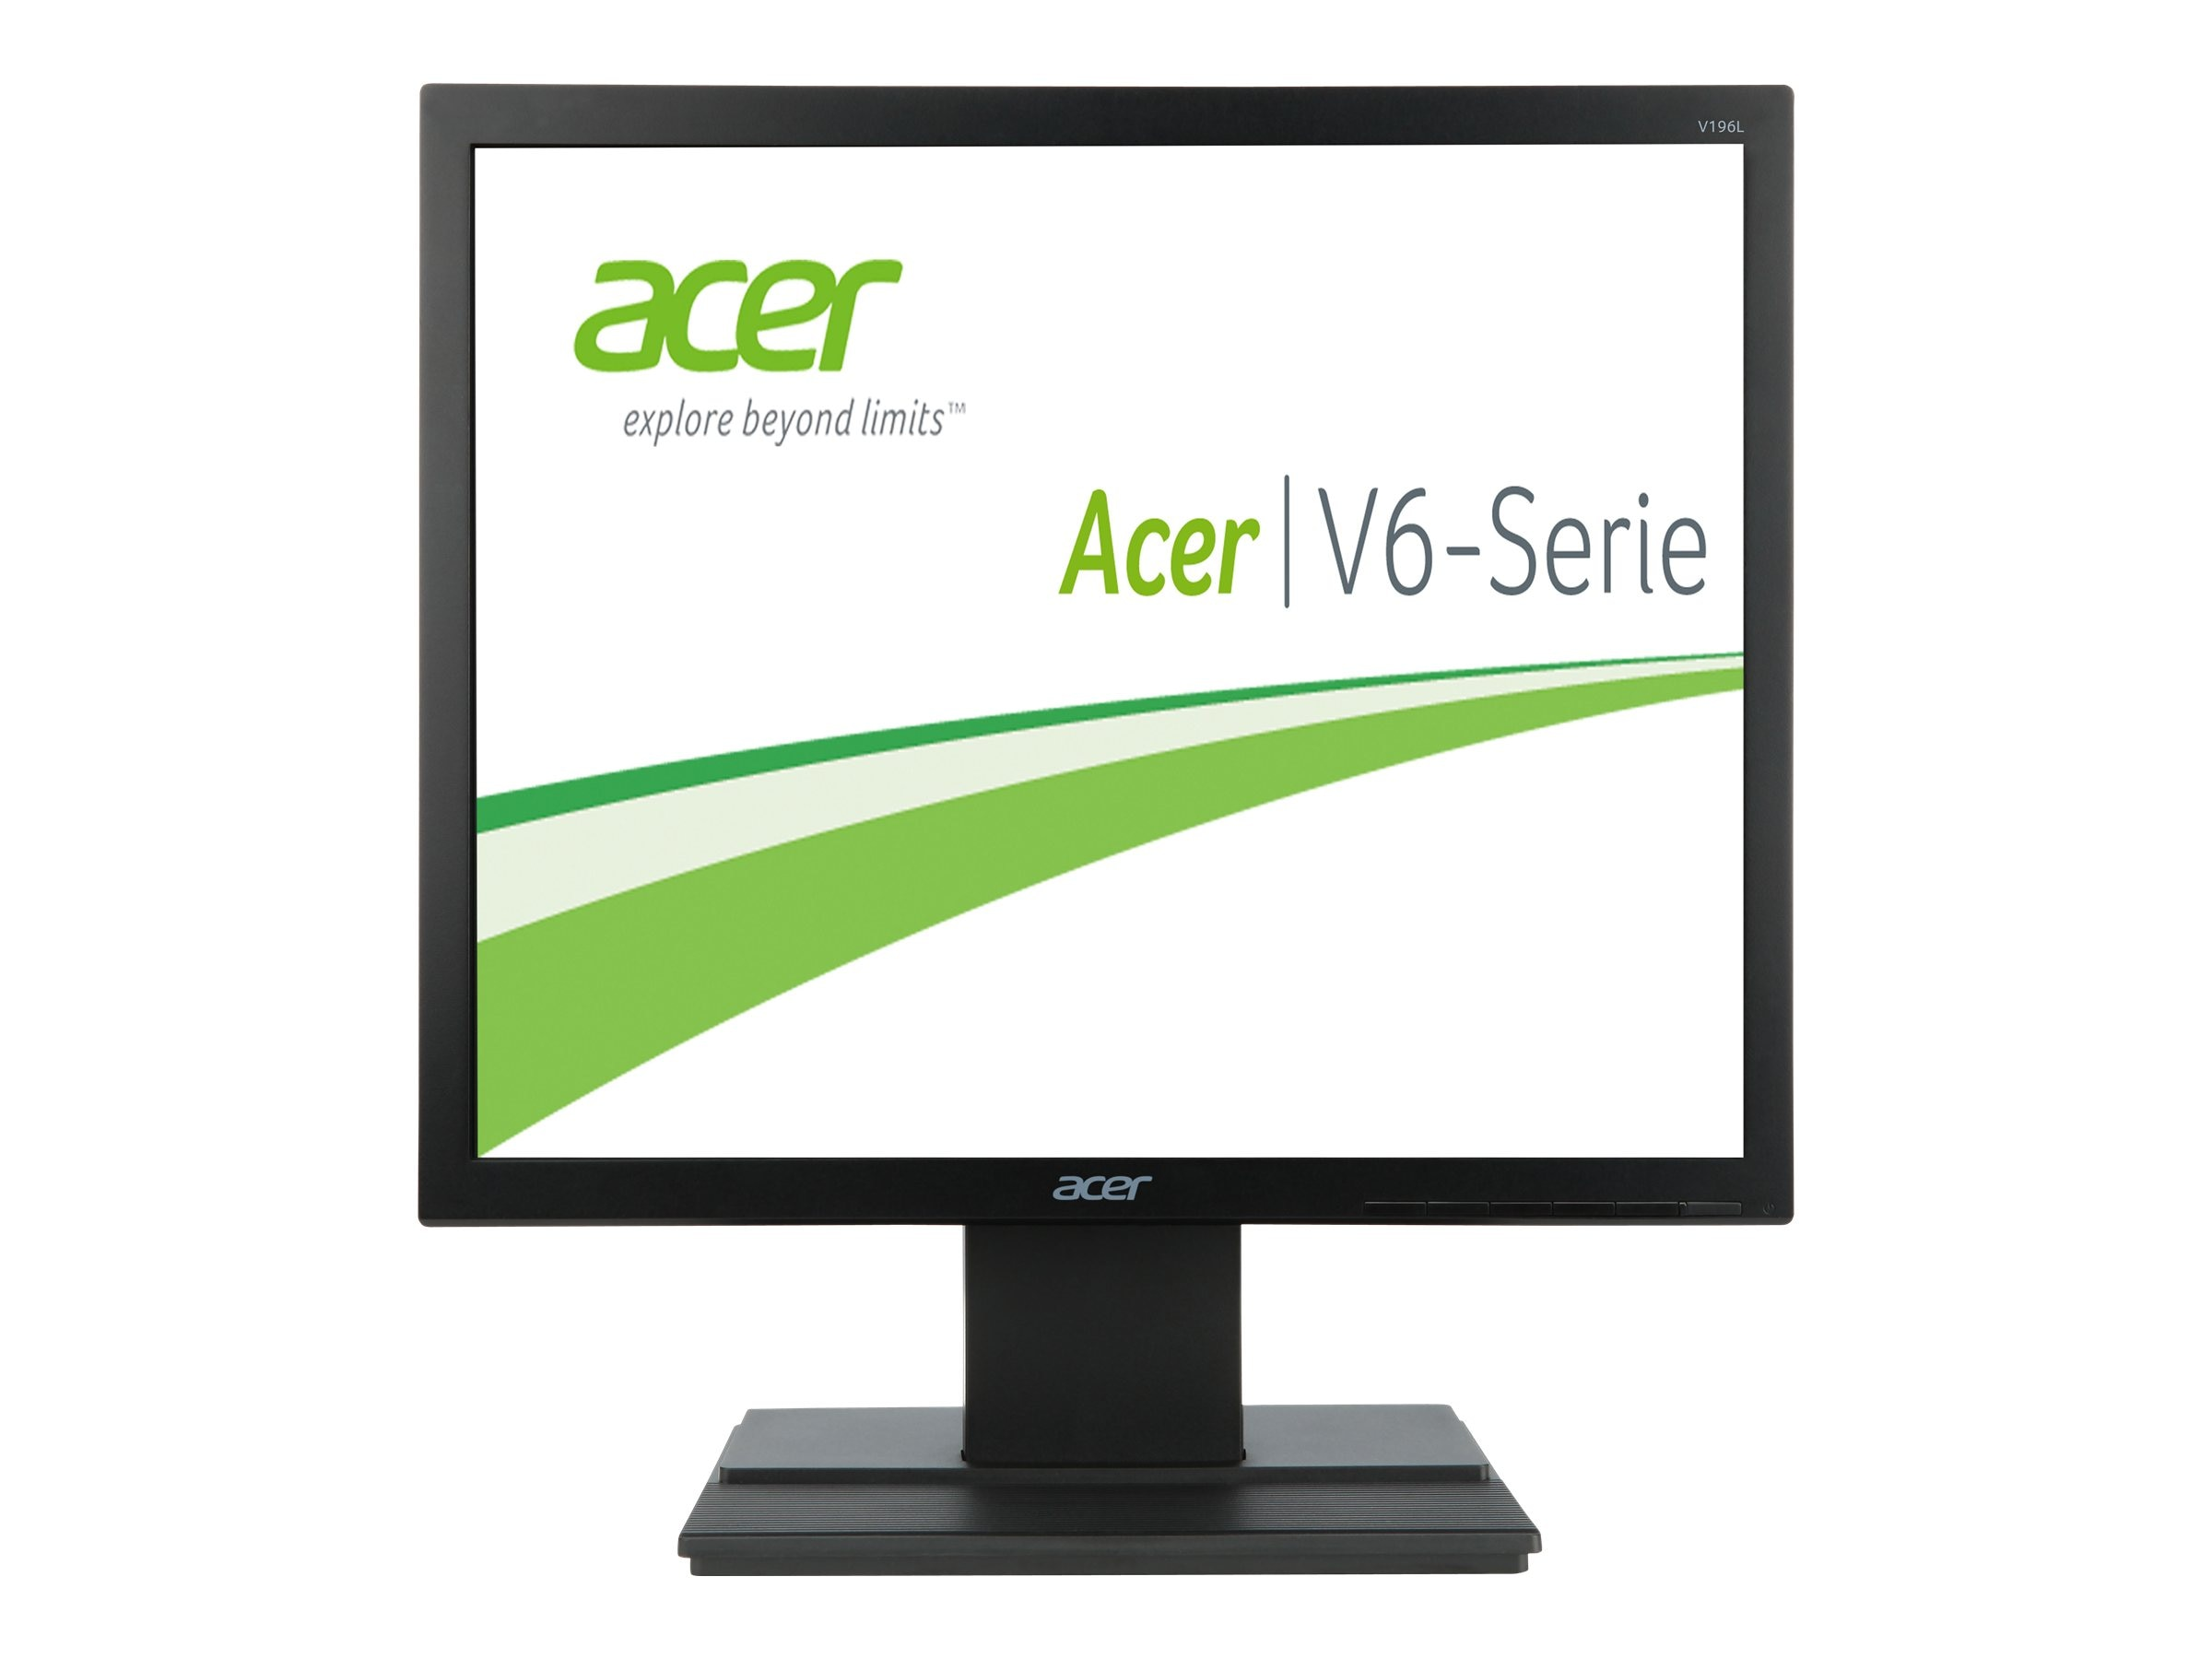 Acer 19 V196L b LED-LCD Monitor, Black, UM.CV6AA.005, 16450233, Monitors - LED-LCD